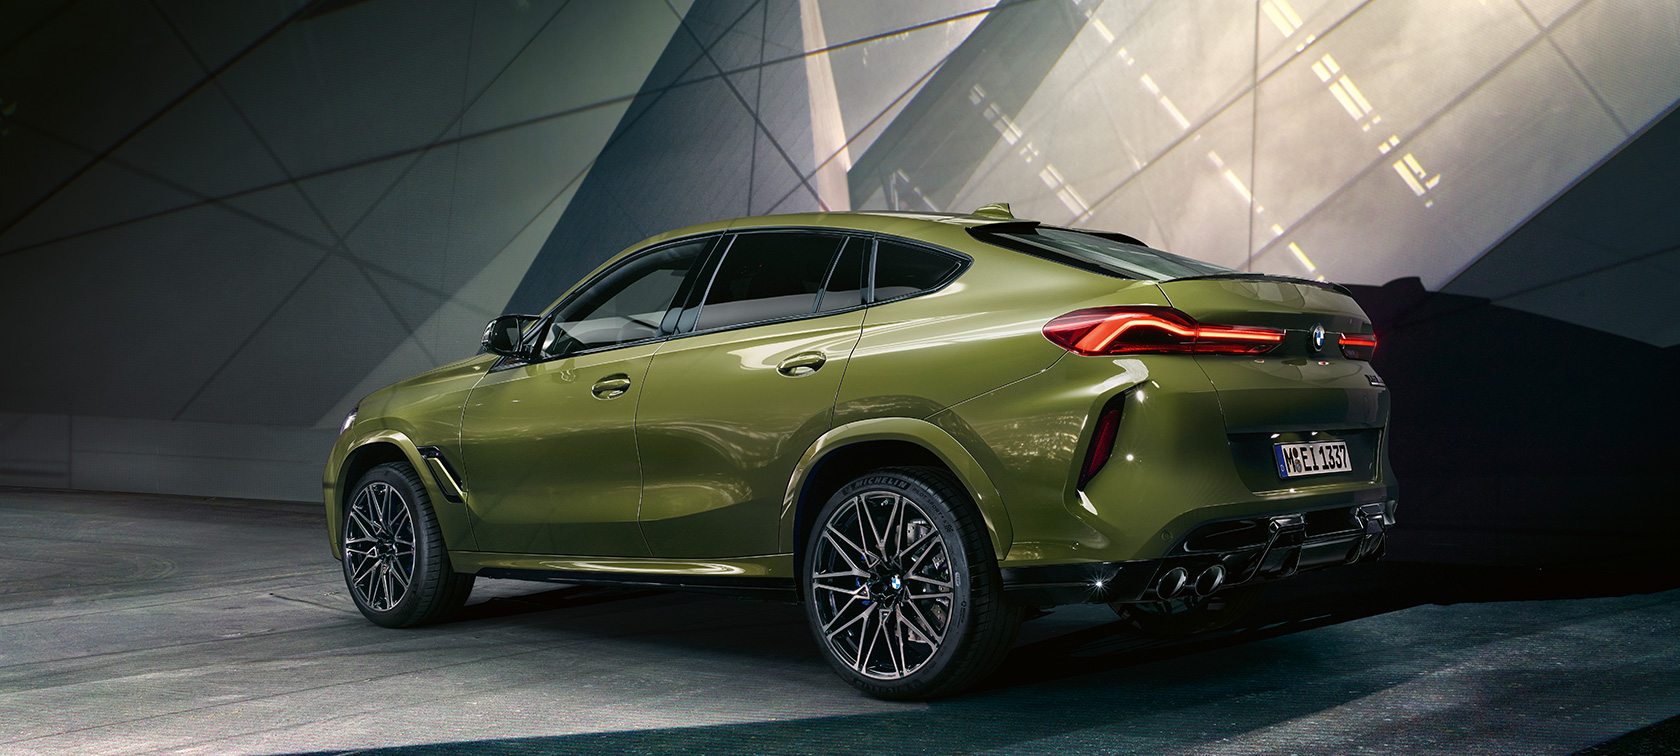 BMW X6 M Competition F96 2020 BMW Individual Special Paint Urban Green three-quarter rear view